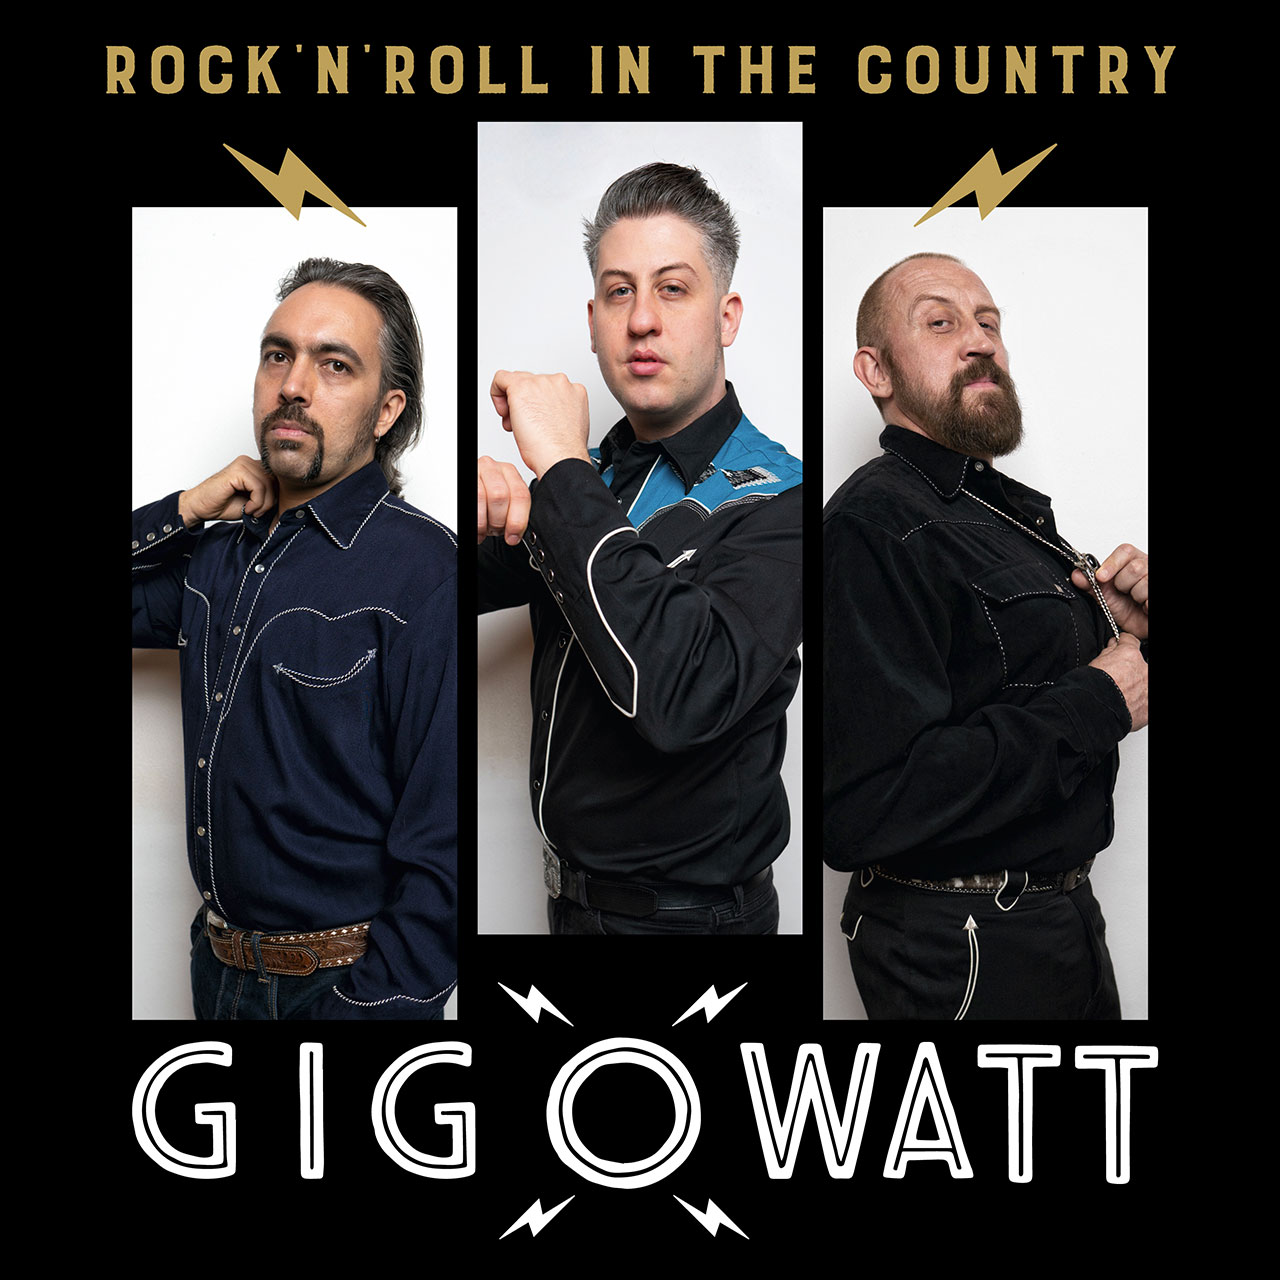 """Gigowatt """"Rock'n'Roll In The Country"""" cover album"""